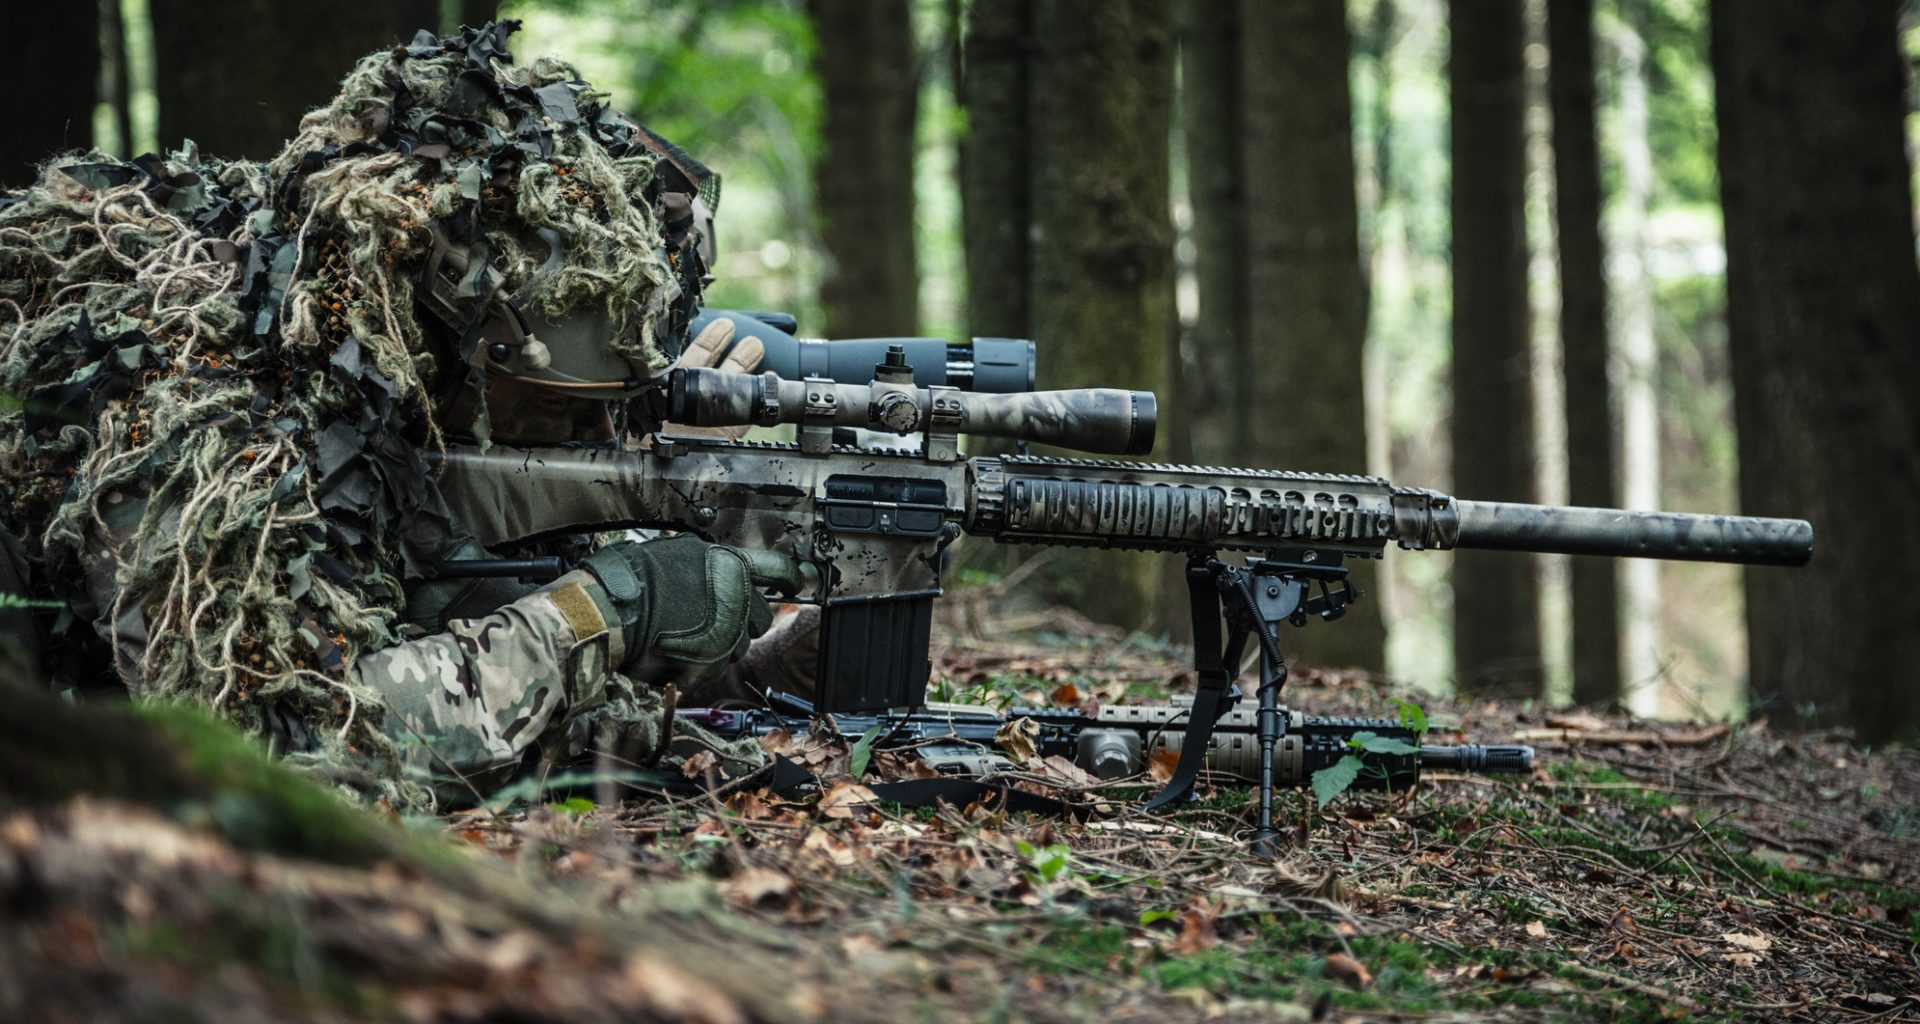 camouflage a rifle